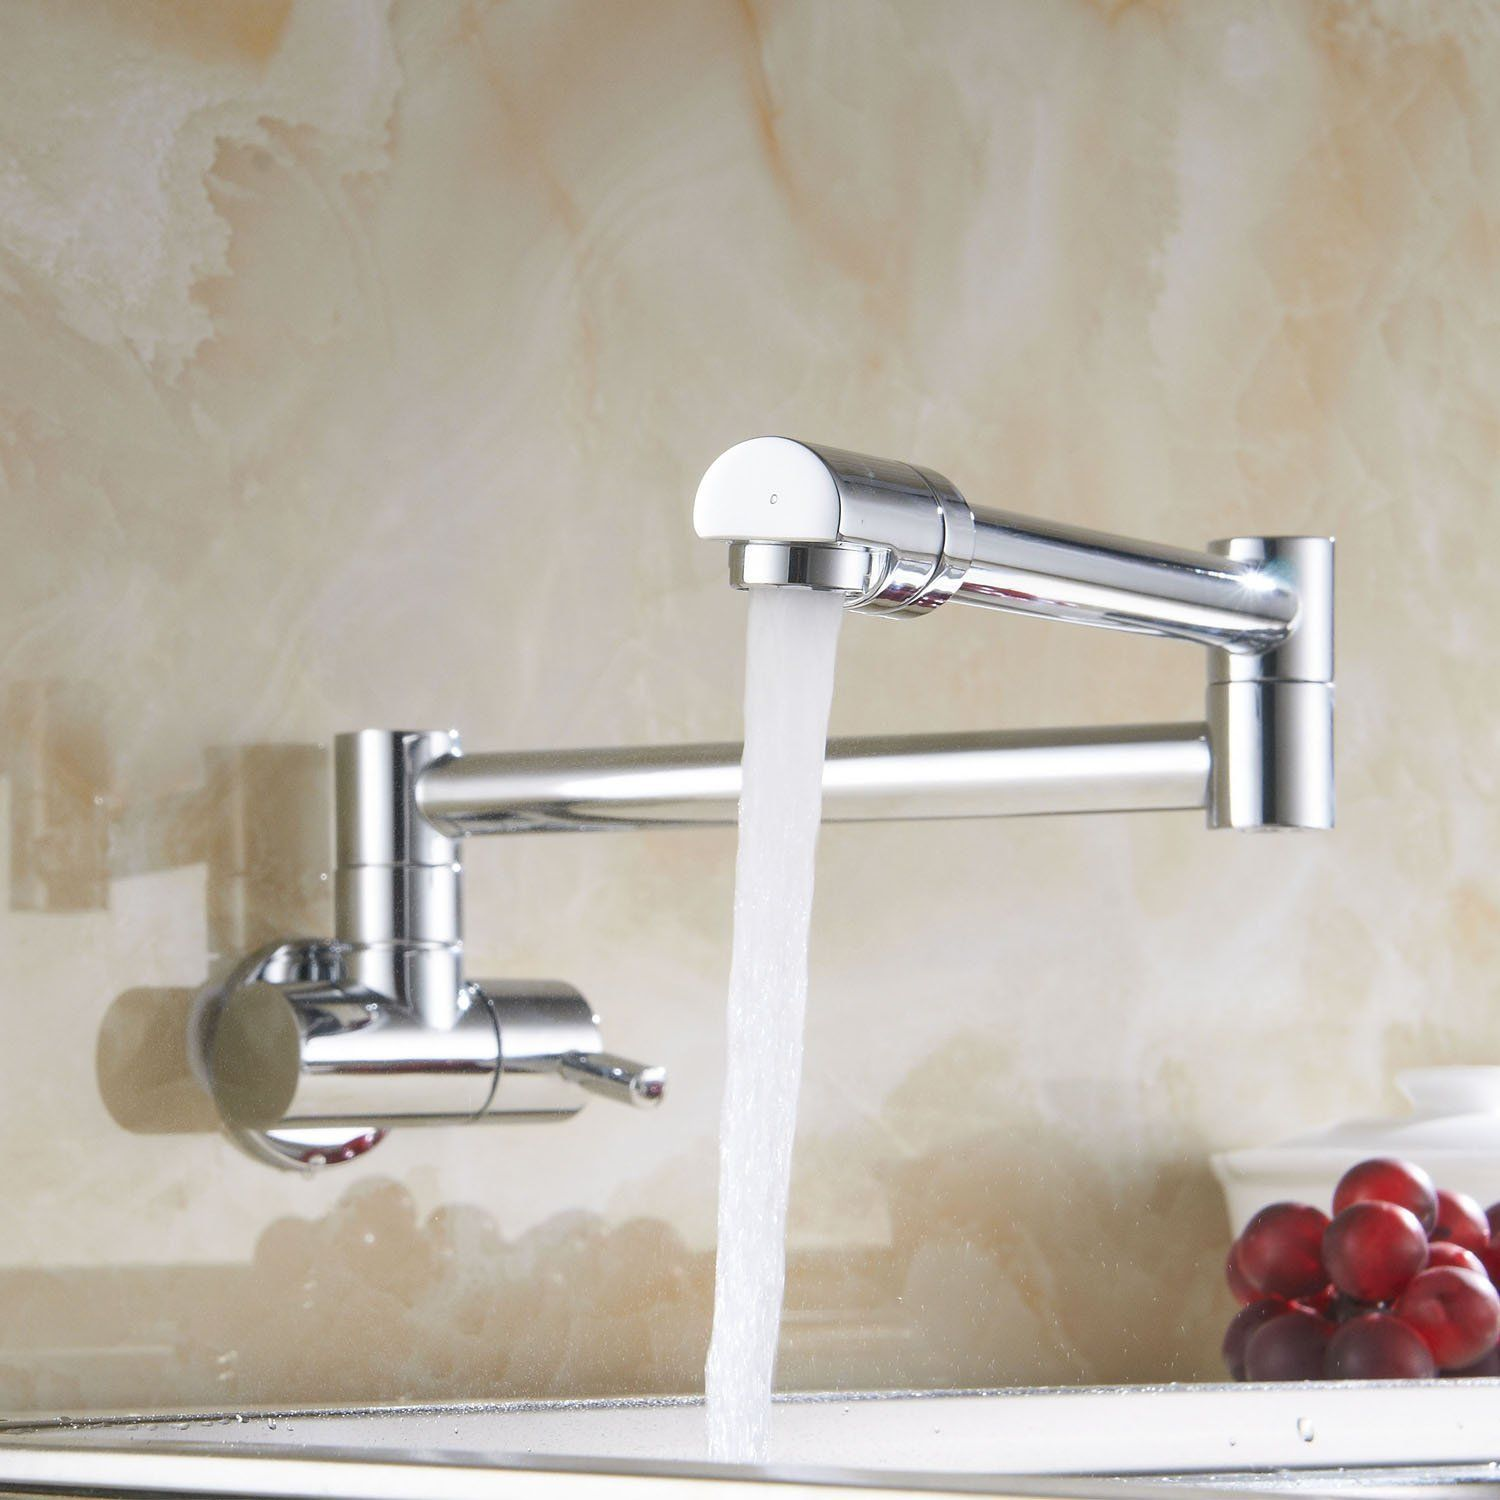 Outstanding Wall Mounted Kitchen Faucet For Best Kitchen